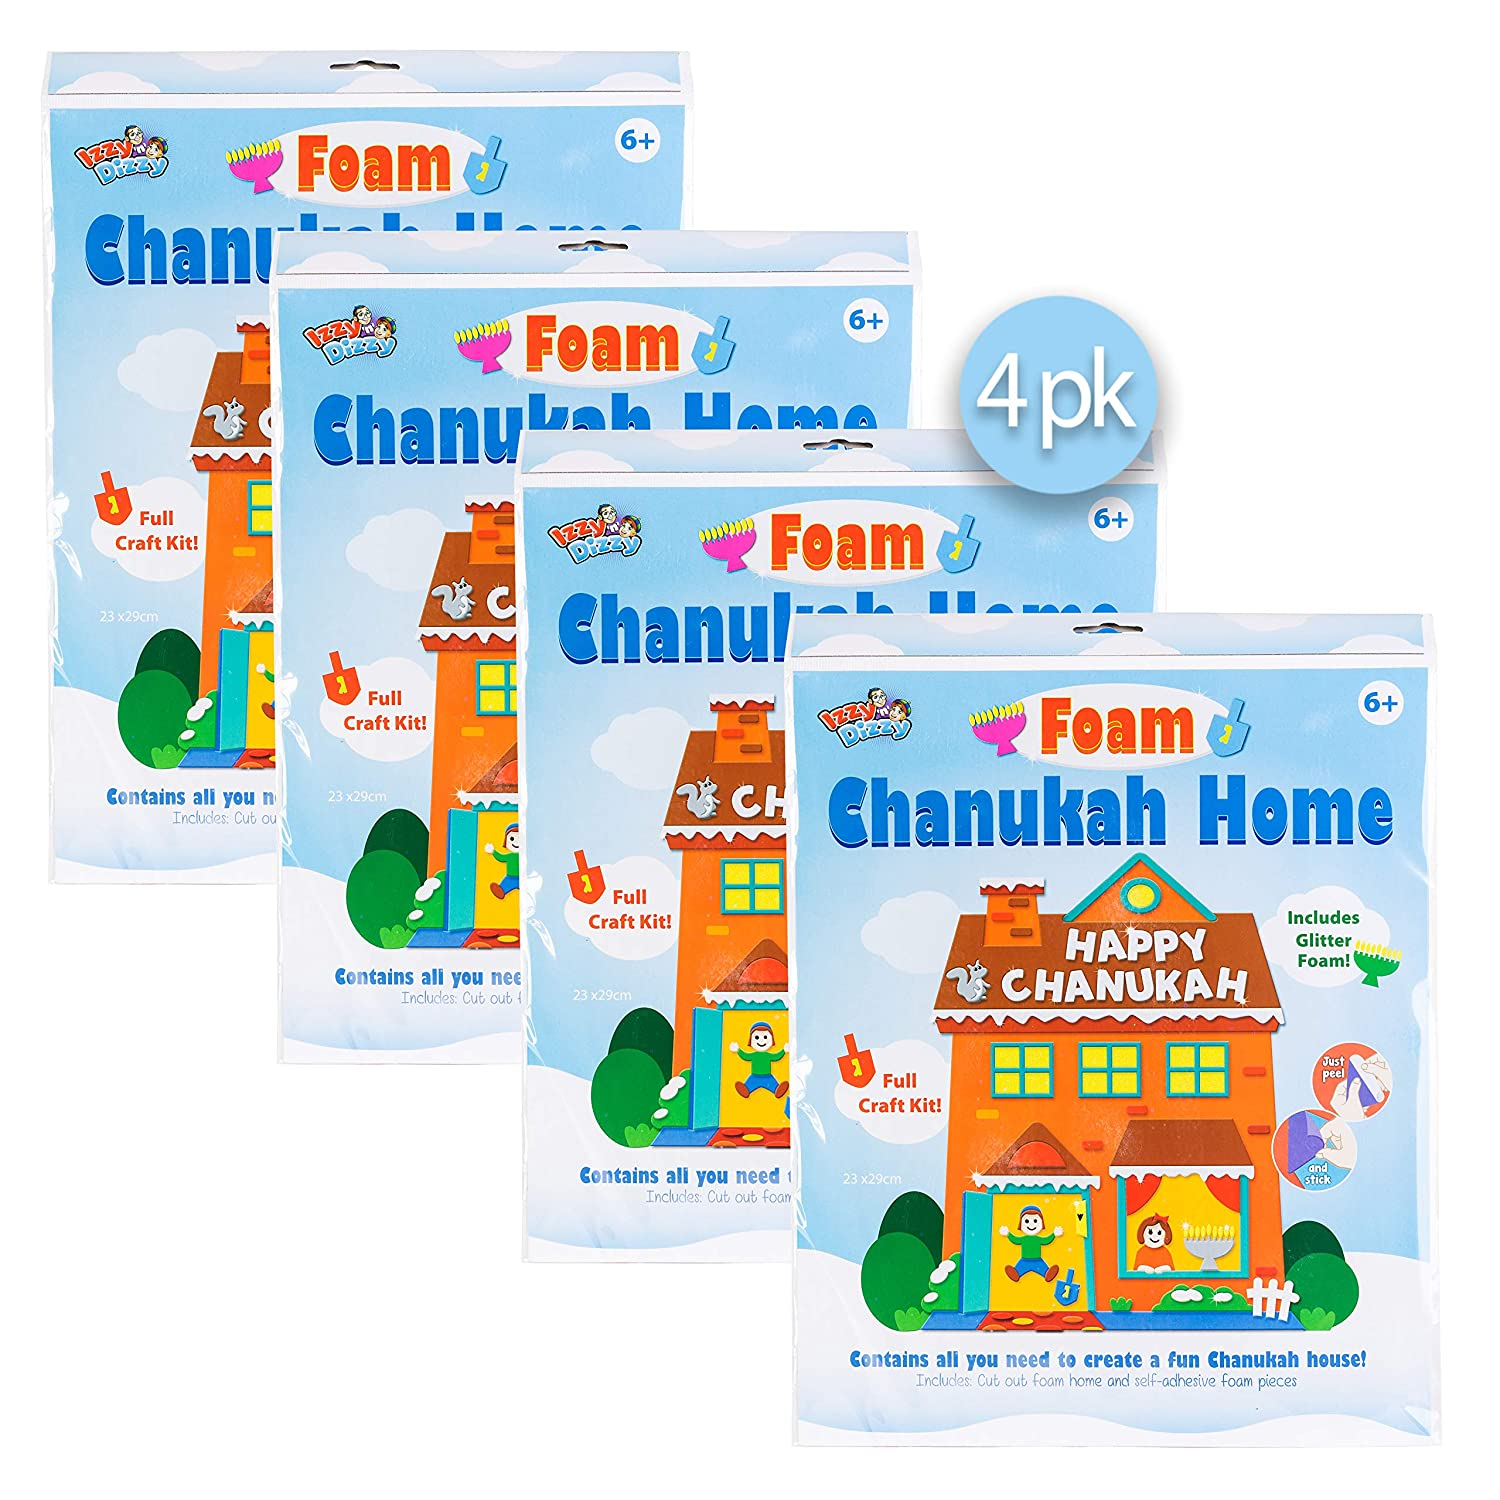 Self Adhesive Peel and Stick Foam 4 Pack Izzy /'n/' Dizzy Foam Chanukah House Kit Hanukkah Arts and Crafts and Games Izzy /'n/' Dizzy